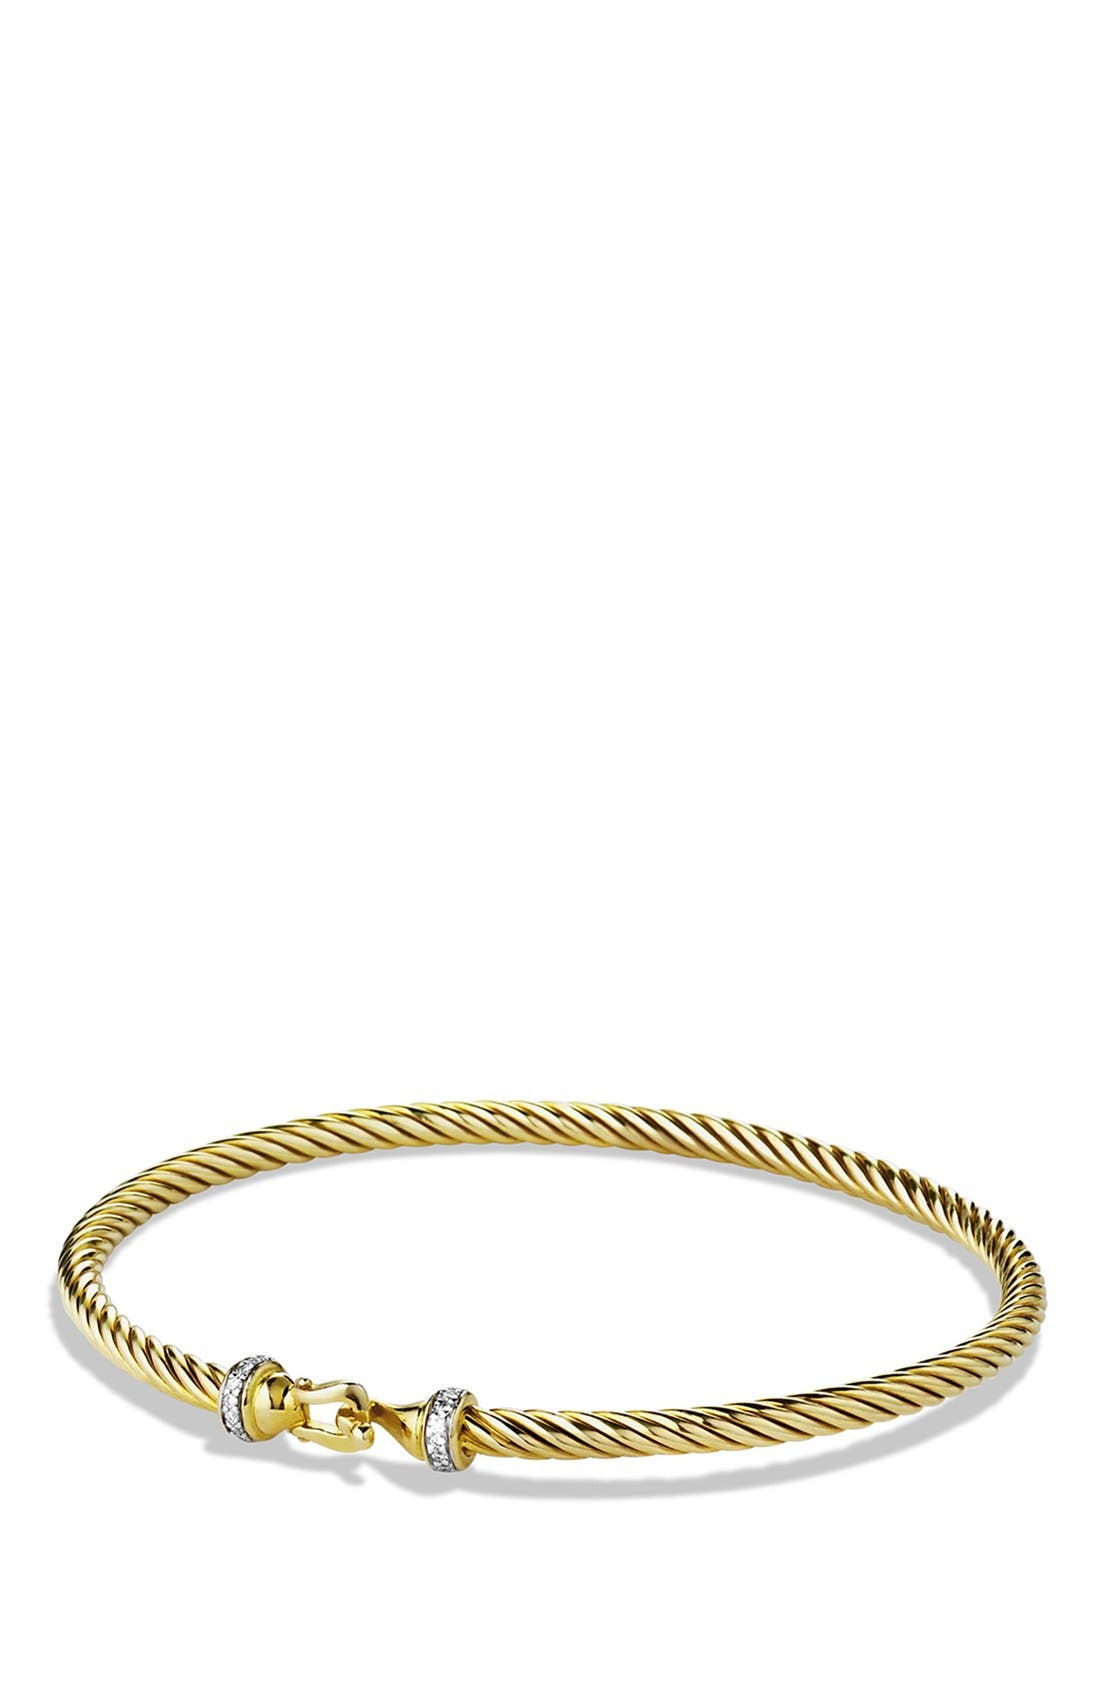 David Yurman 'Cable Buckle' Bracelet with Diamonds in Gold